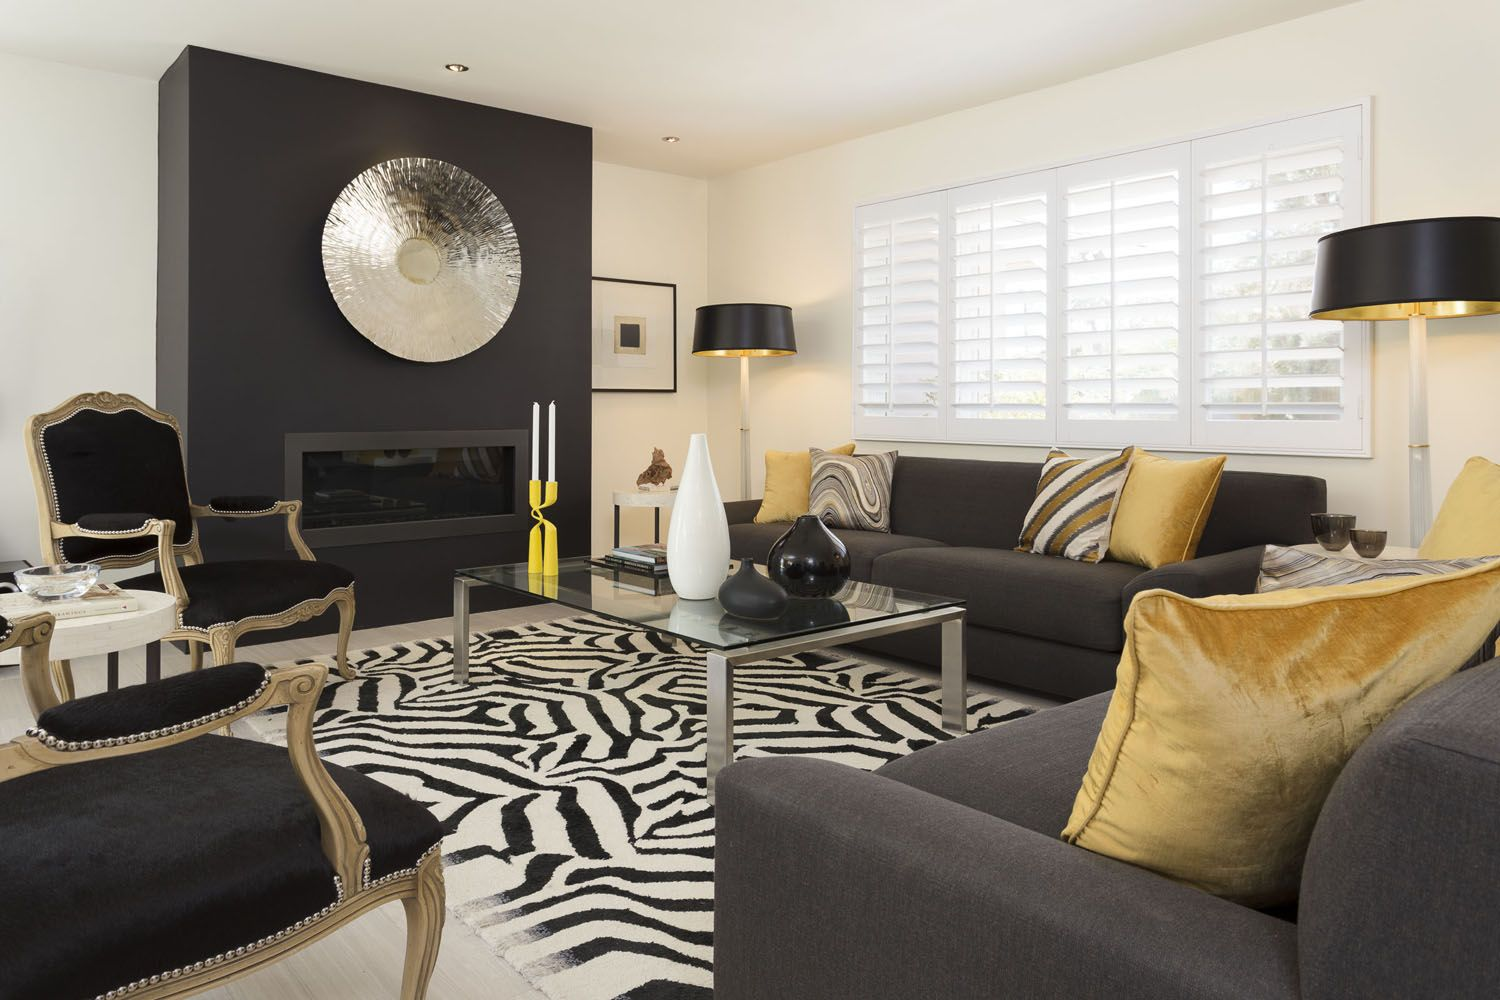 Hollywood Regency Style Living Room Decor With Lacroix Zebra Area Rug